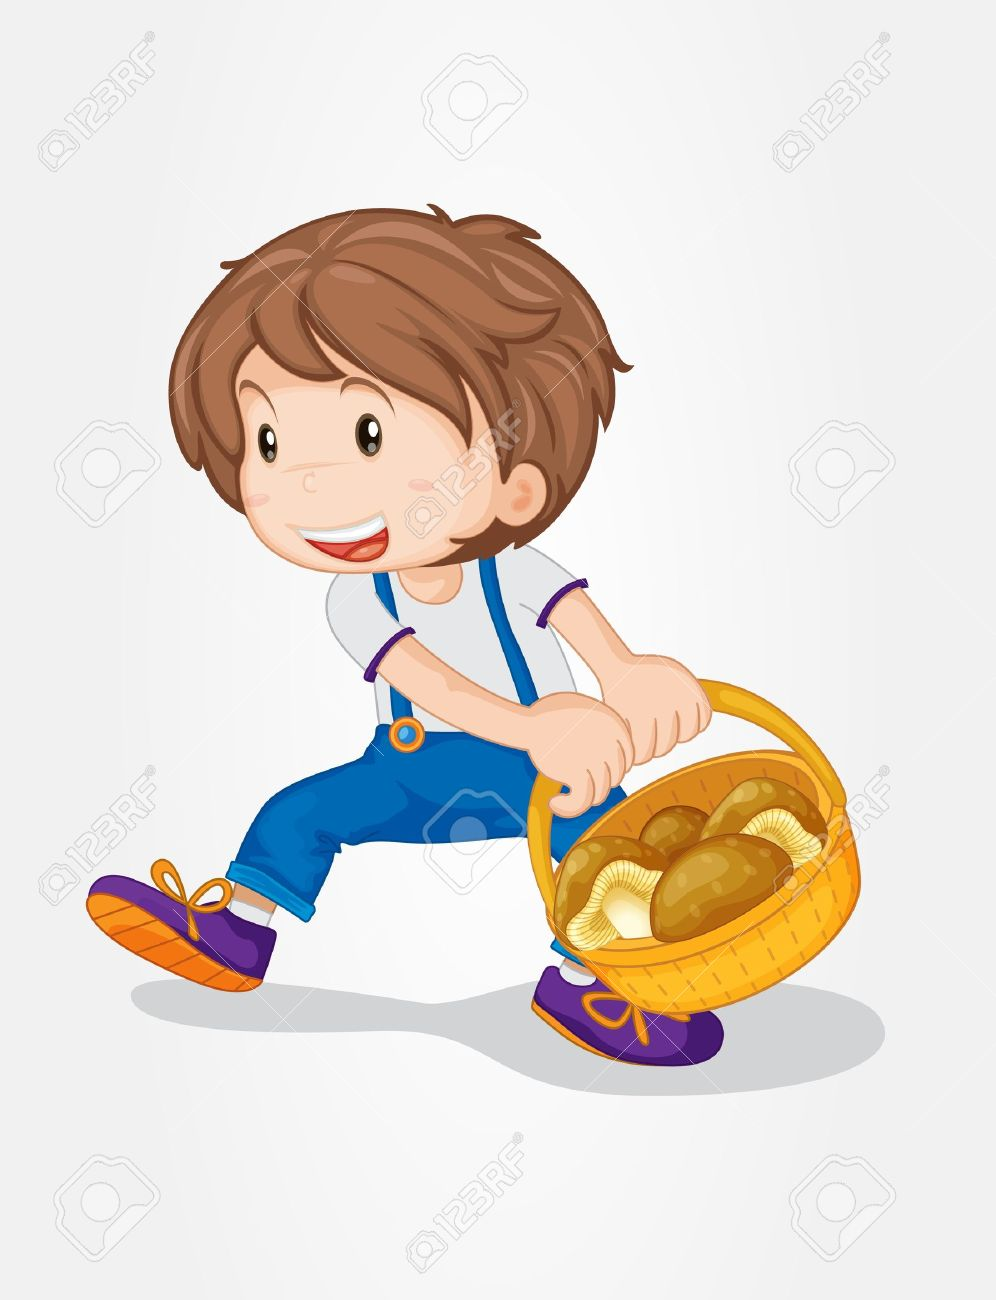 Illustration Of A Boy With A Basket Of Mushrooms Royalty Free.